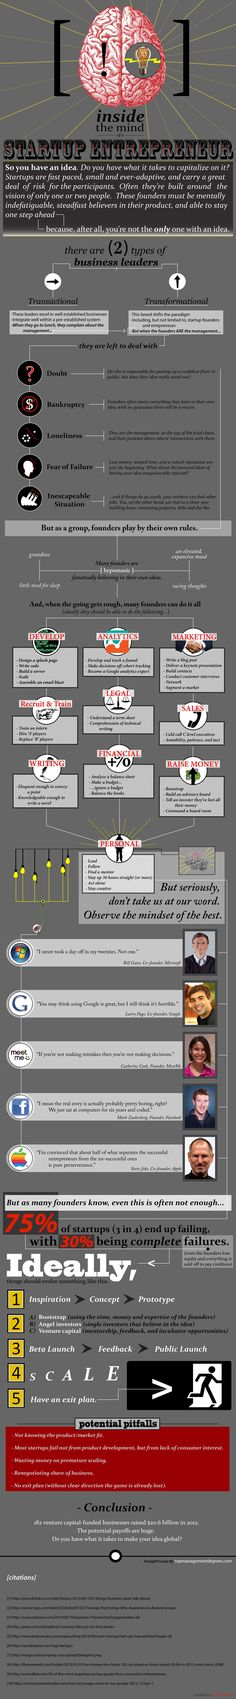 Inside the mind of a startup entrepreneur, startup infographic, startup tips